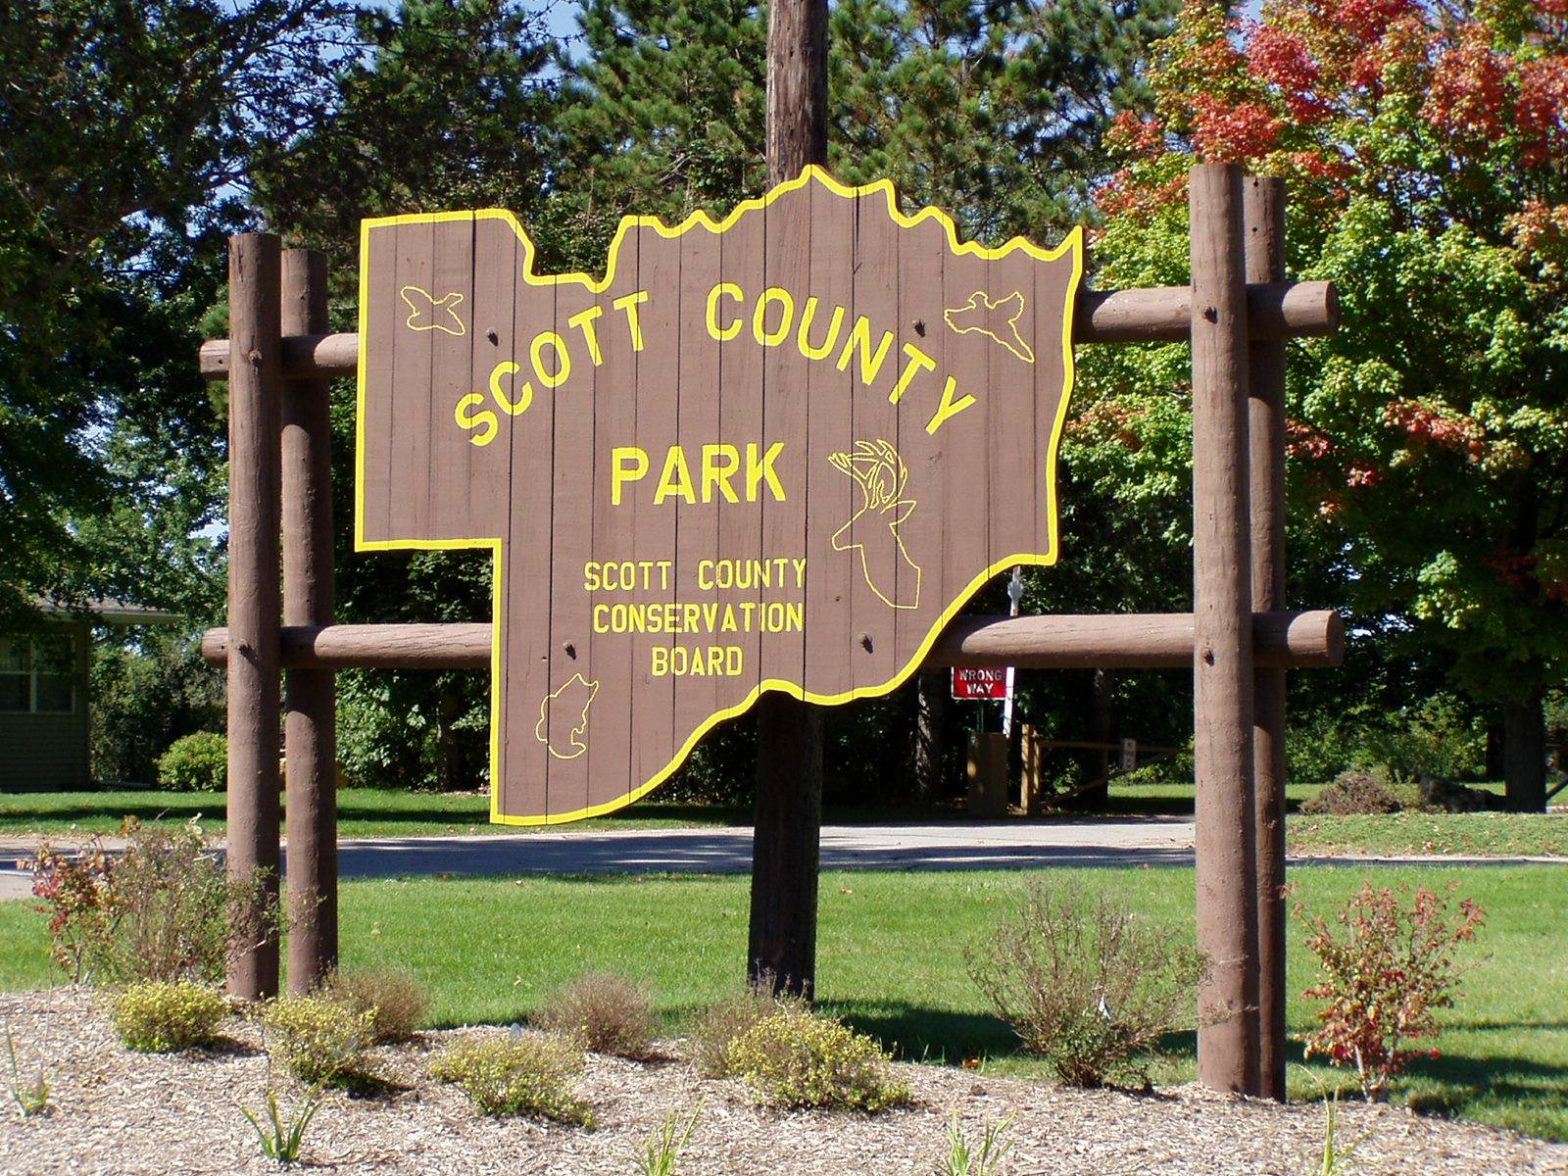 Welcome sign to Scott County park.